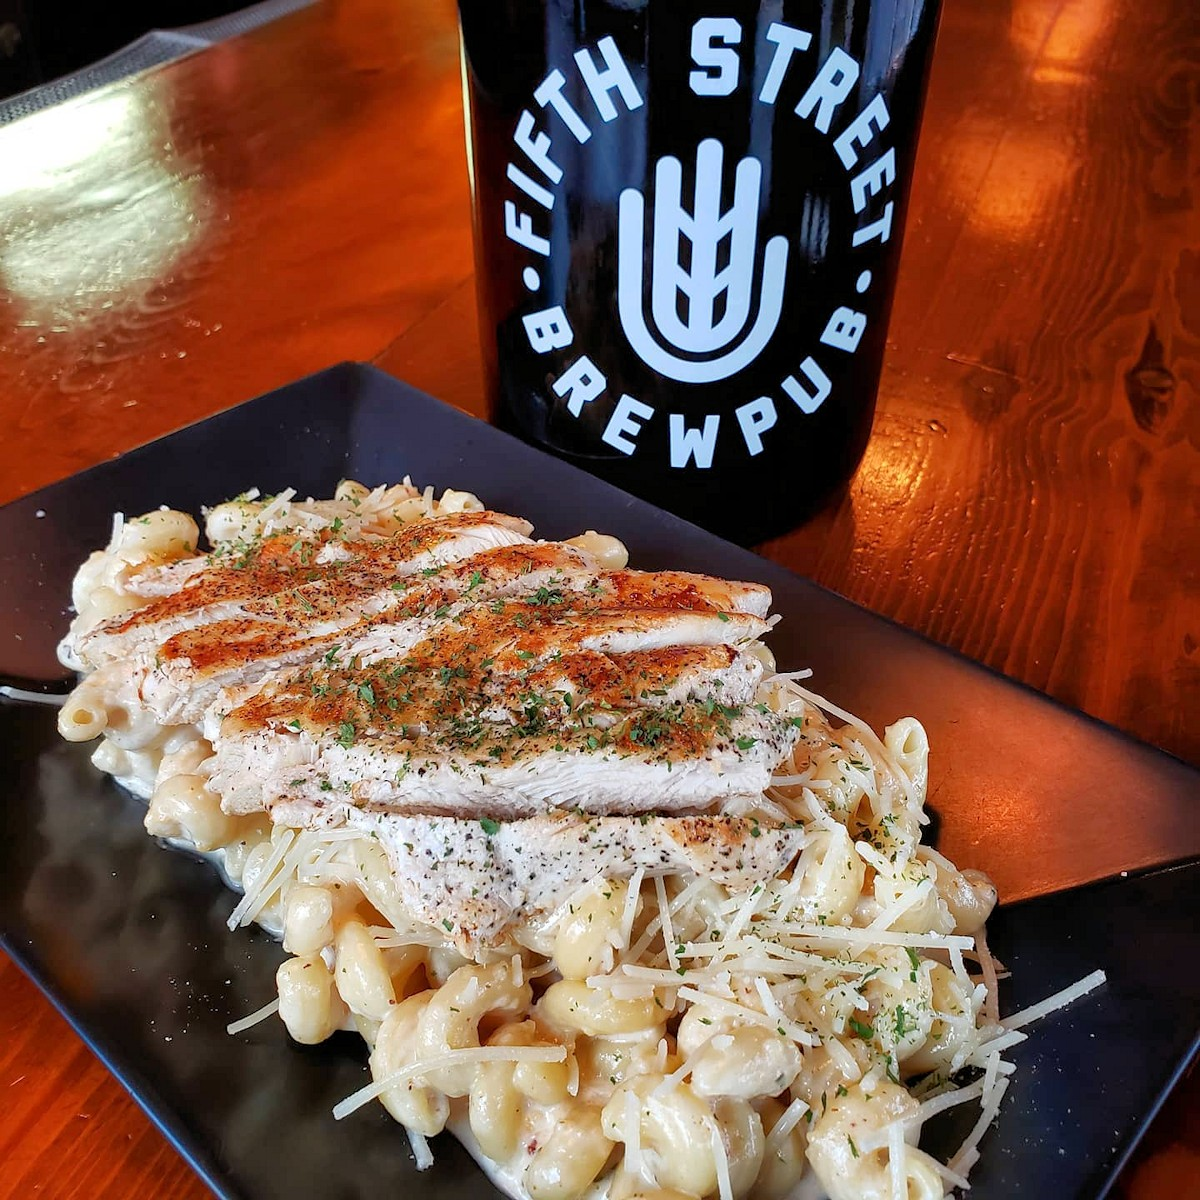 Cold nights call for carry-out. We suggest Chicken Alfredo and a growler of Saison Dutoit but, hey, we'll leave it to your stomach to make up your mind.  Carry-out, dine-in, or patio. Menus on our website.  Call 937-443-0919 to order.  #wearamask #craftwithcare #community https://t.co/4zZYP2R0AX